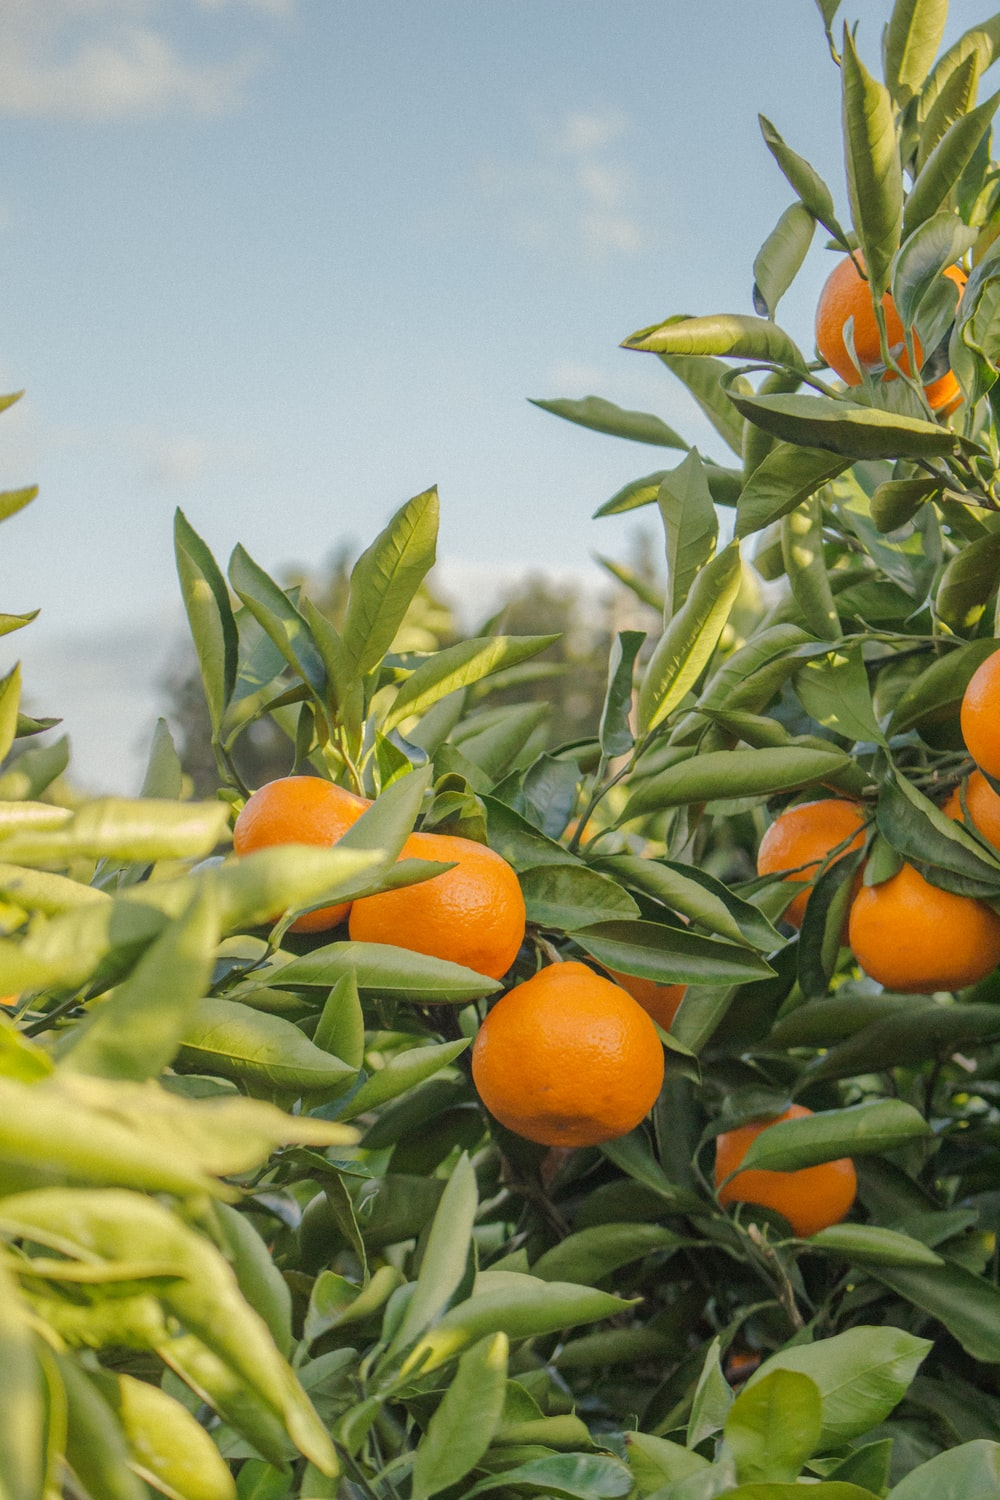 selective focus photography of unpicked orange fruits during daytime